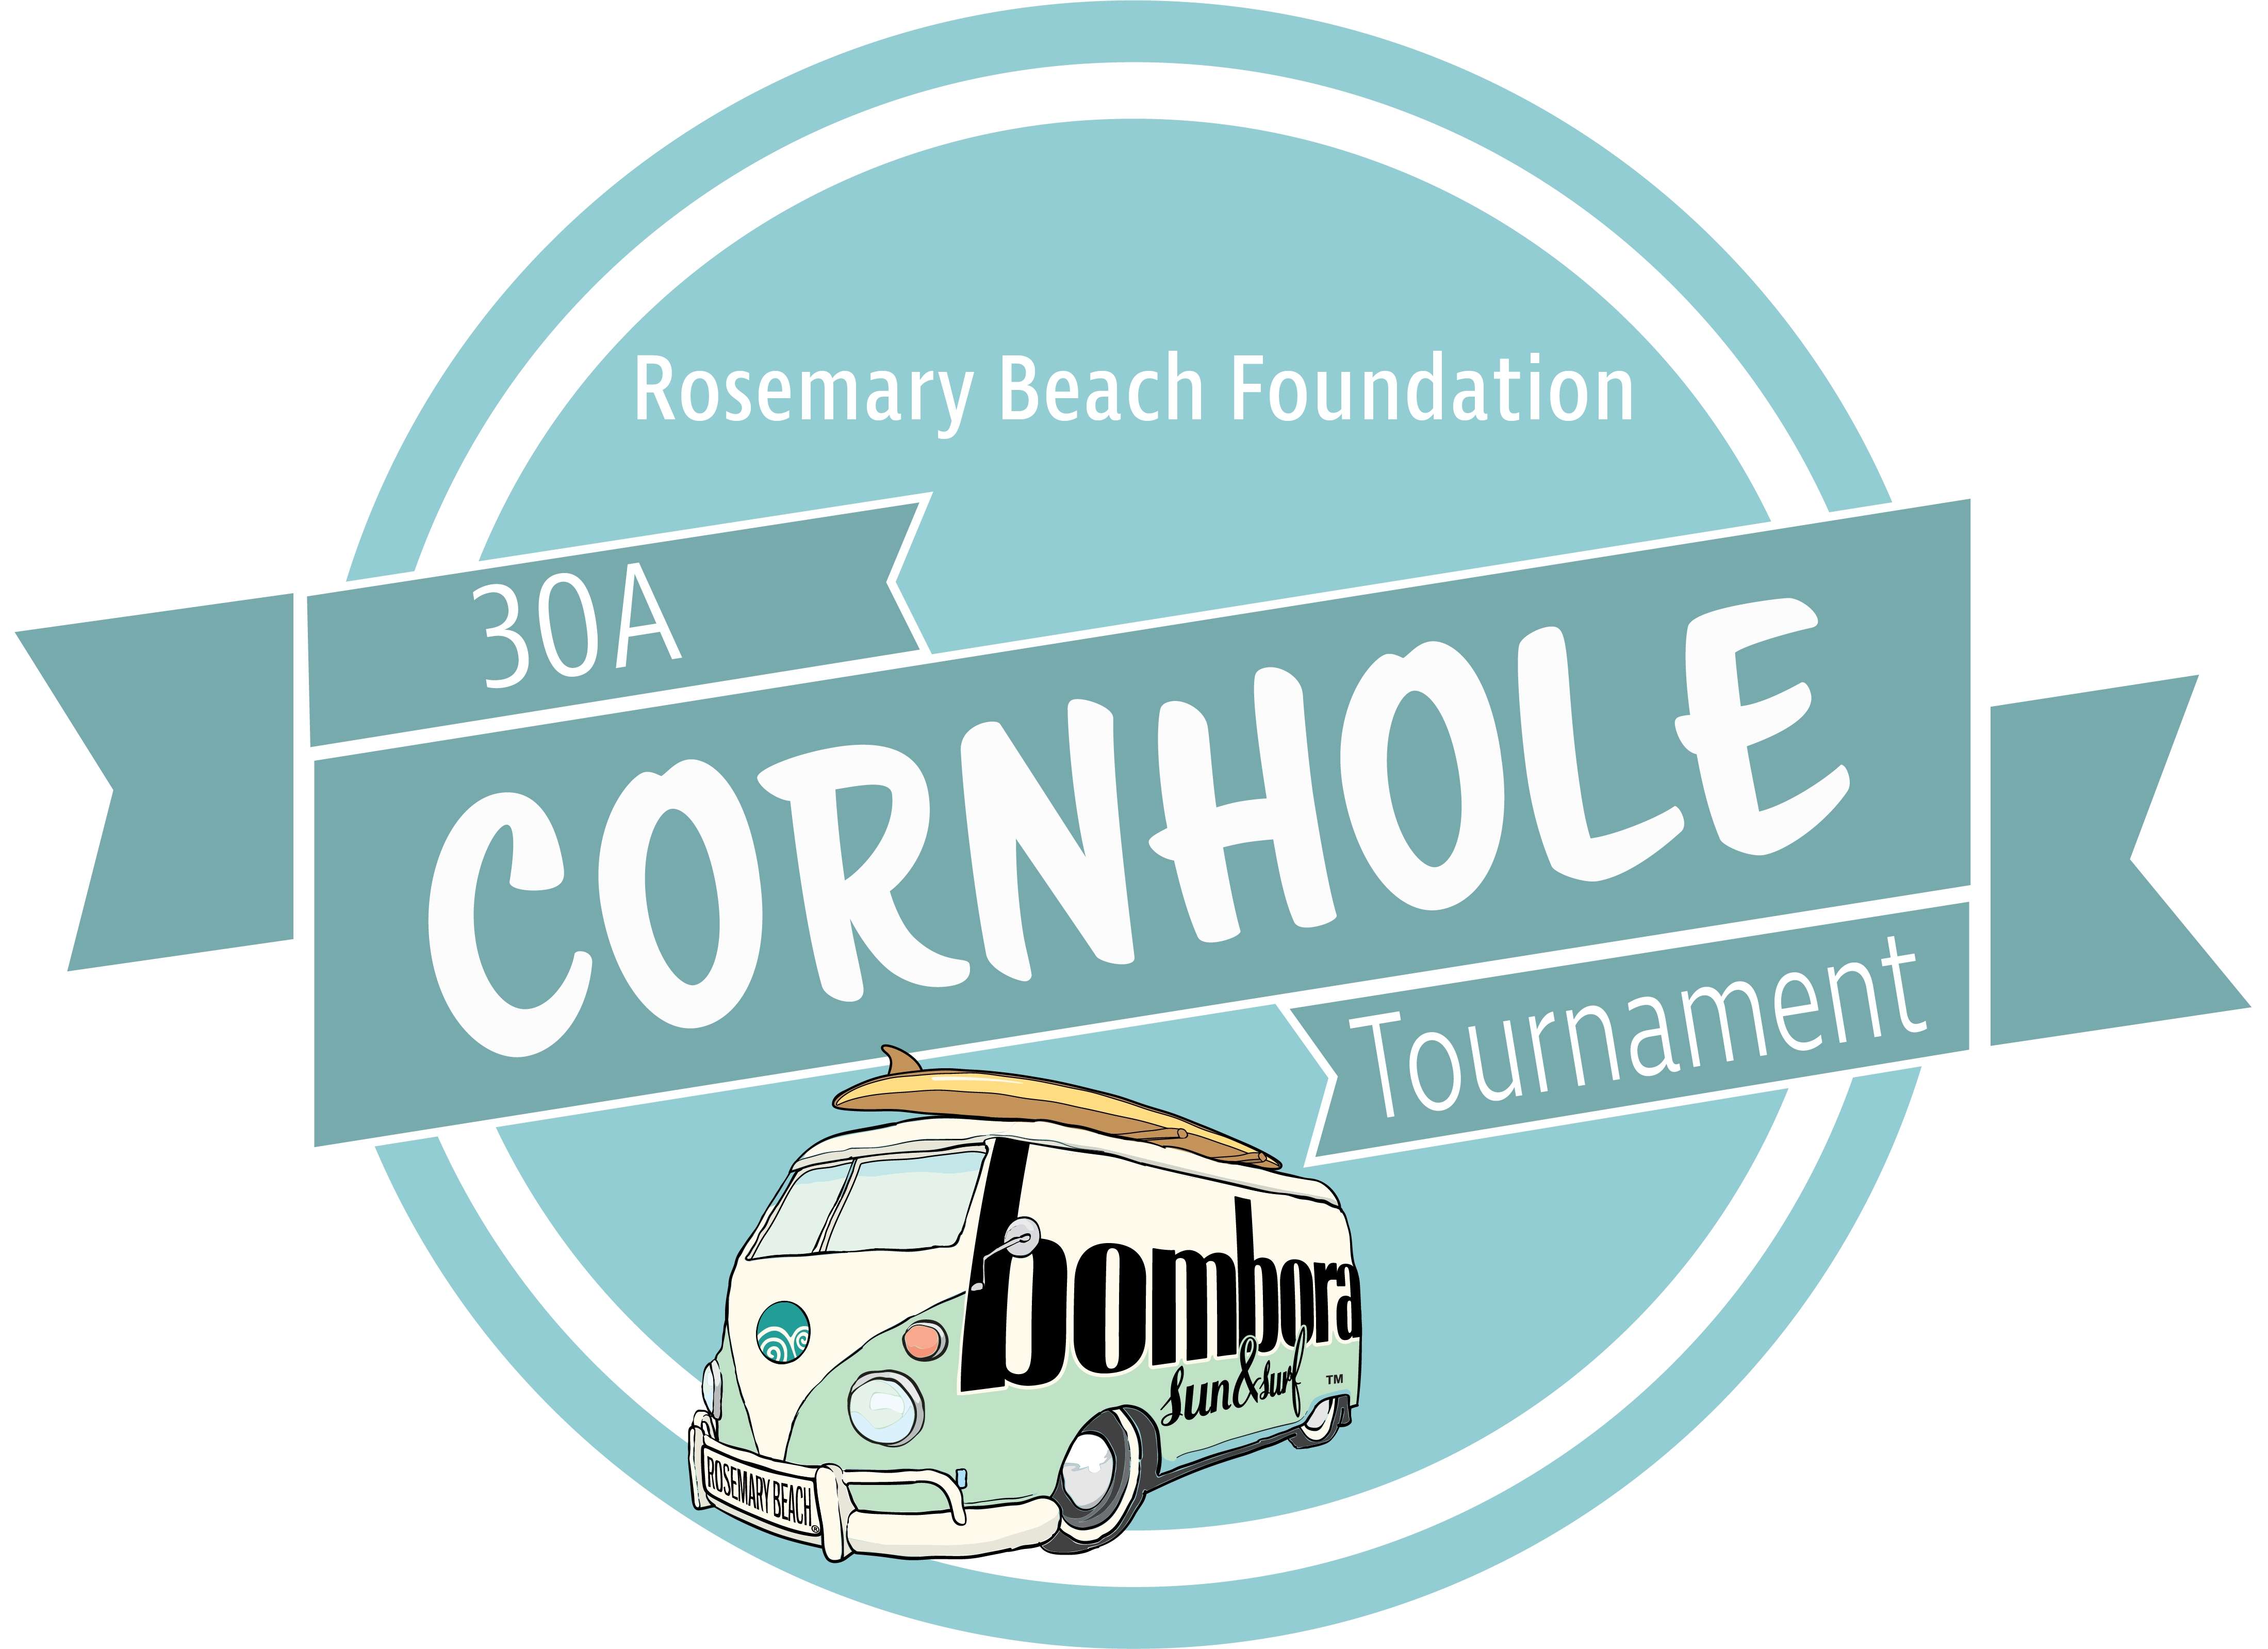 6th Annual 30A Cornhole Tournament